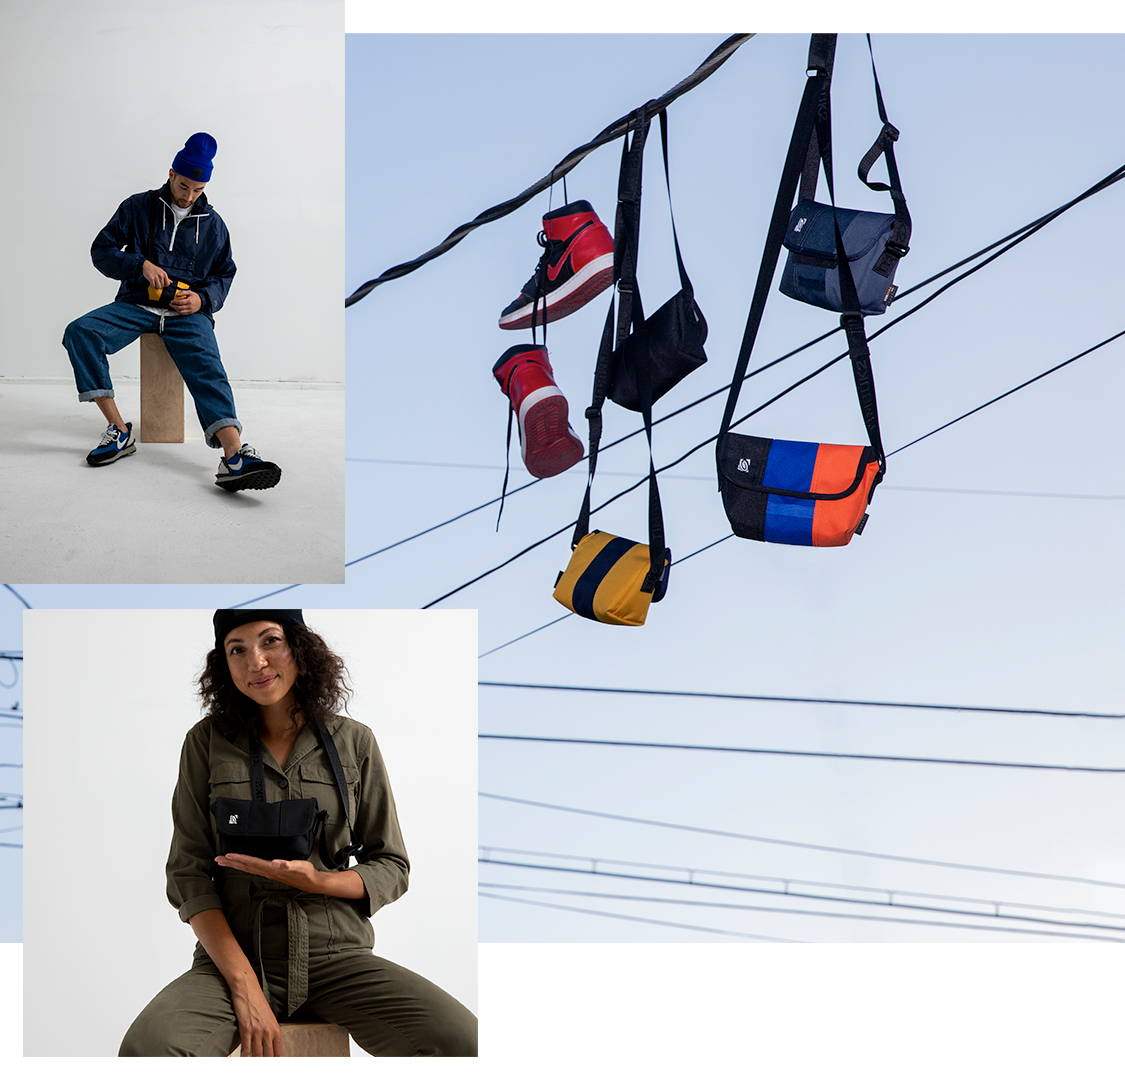 Image collage of a couple models holding the Micro Classic Messenger Bags in one hand. There's also an image of the Micro Messenger hanging from telephone wires with some sneakers hanging as well.